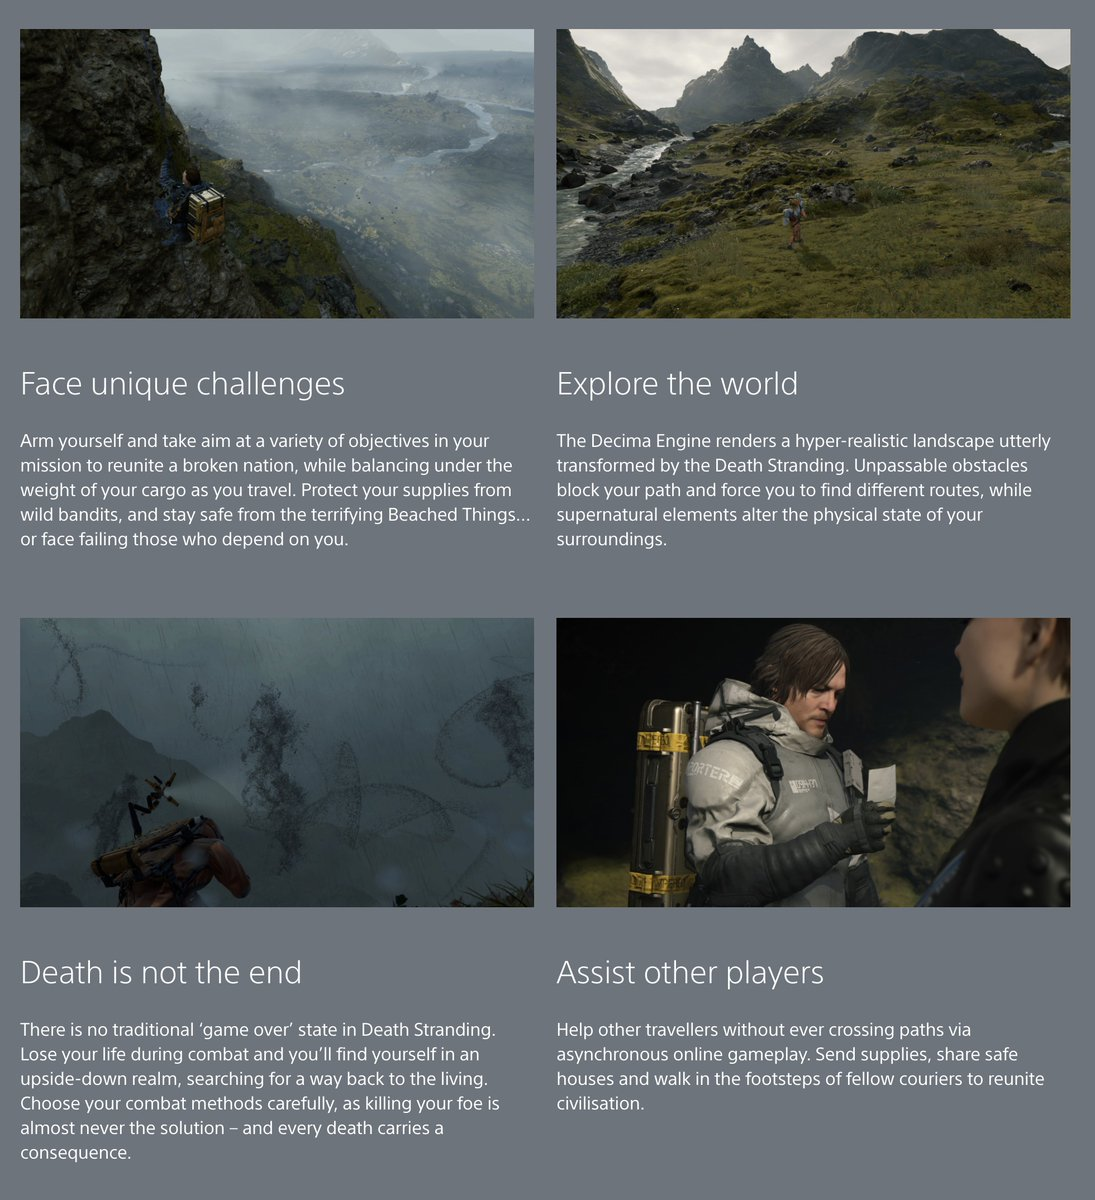 """death stranding multiplayer, Death Stranding Multiplayer to Offer """"Asynchronous"""" Gameplay, No Player Will Ever Cross Paths, MP1st, MP1st"""